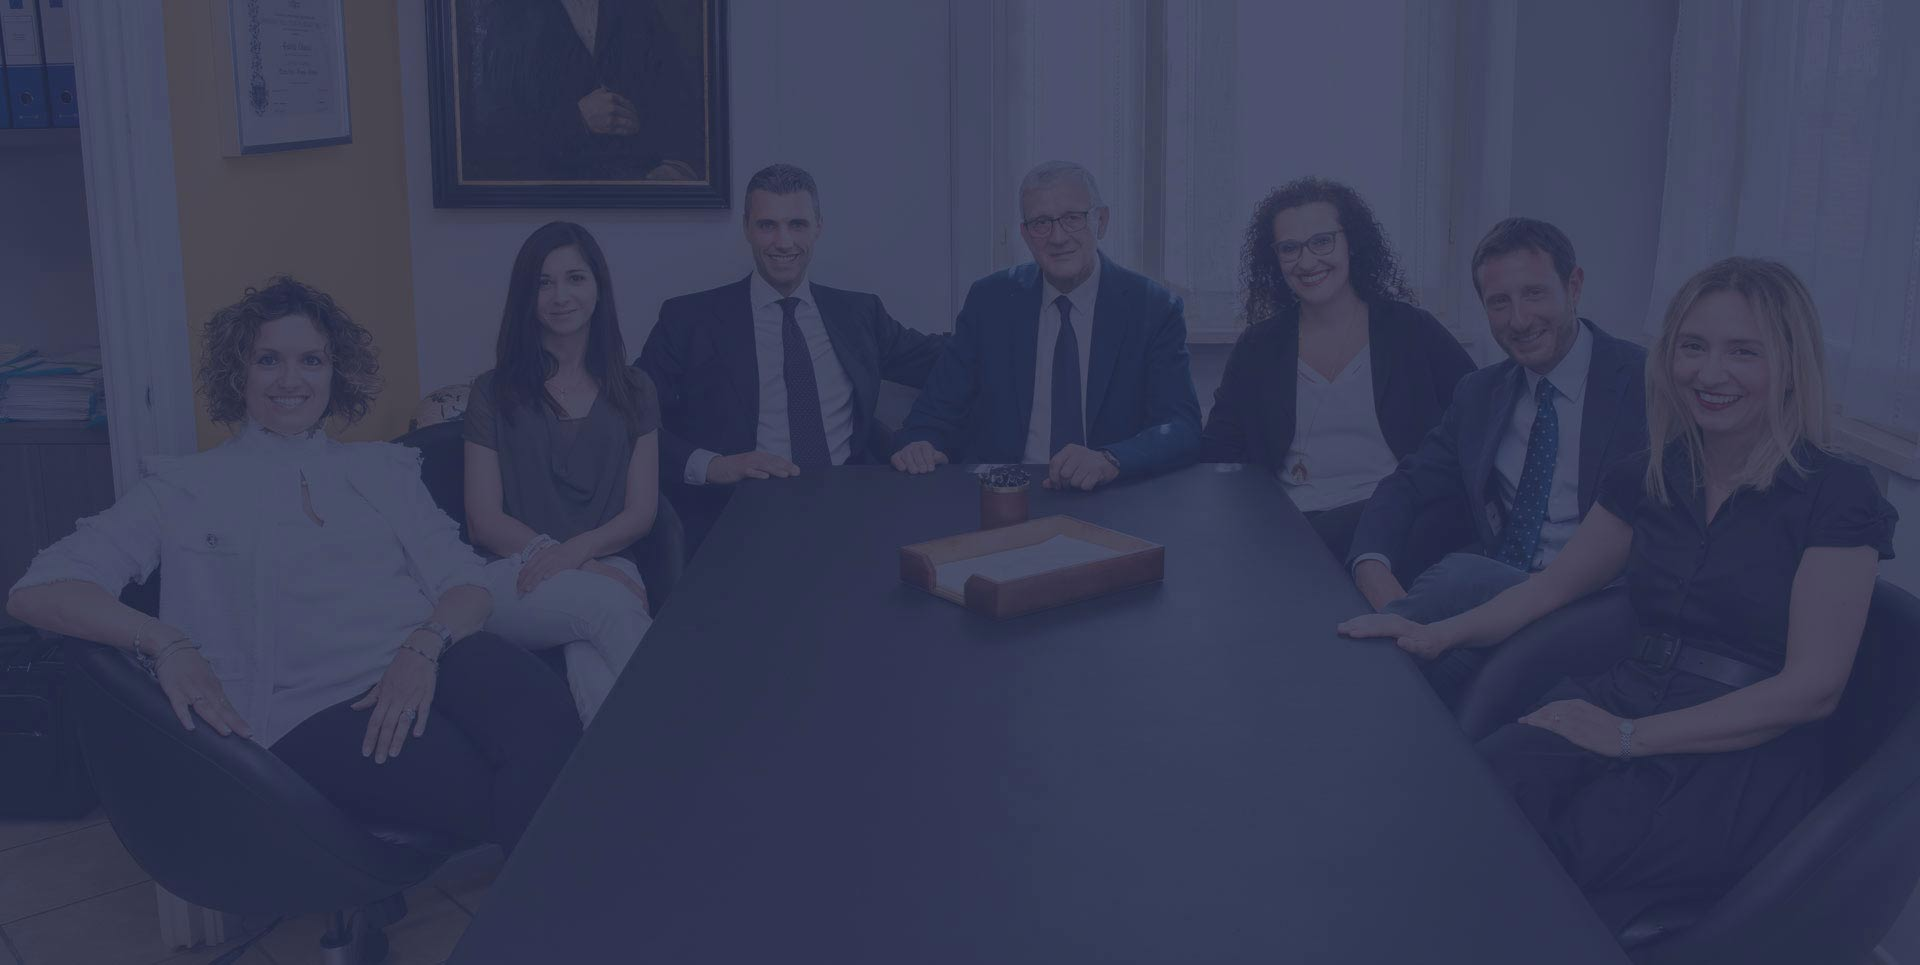 Chiarini Law Firm